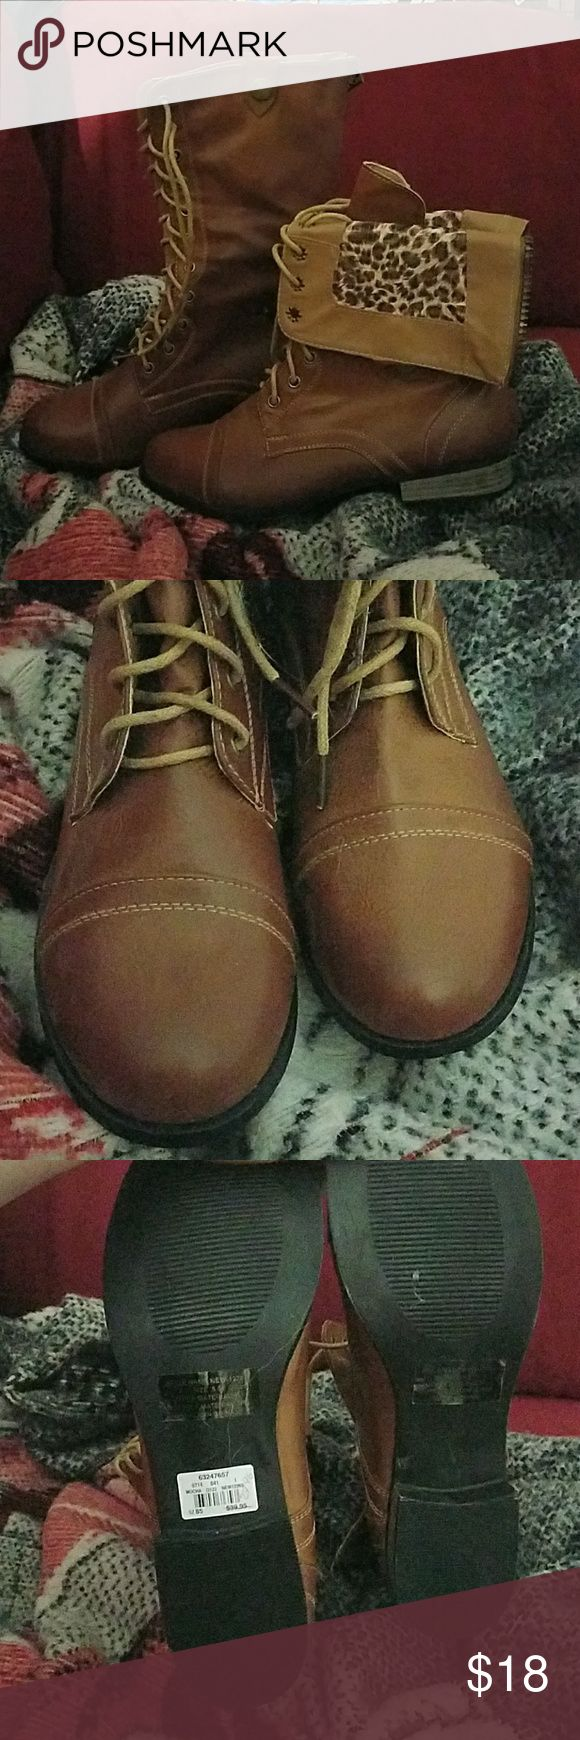 NWT tan leather boots with cheetah zip down inset! Vanity brand Tan leather boots with cheetah inset that can be flipped down for another look. New with tags still on never worn. Make an offer. Tag shows marked down price so that's what I'm using! Vanity Shoes Combat & Moto Boots